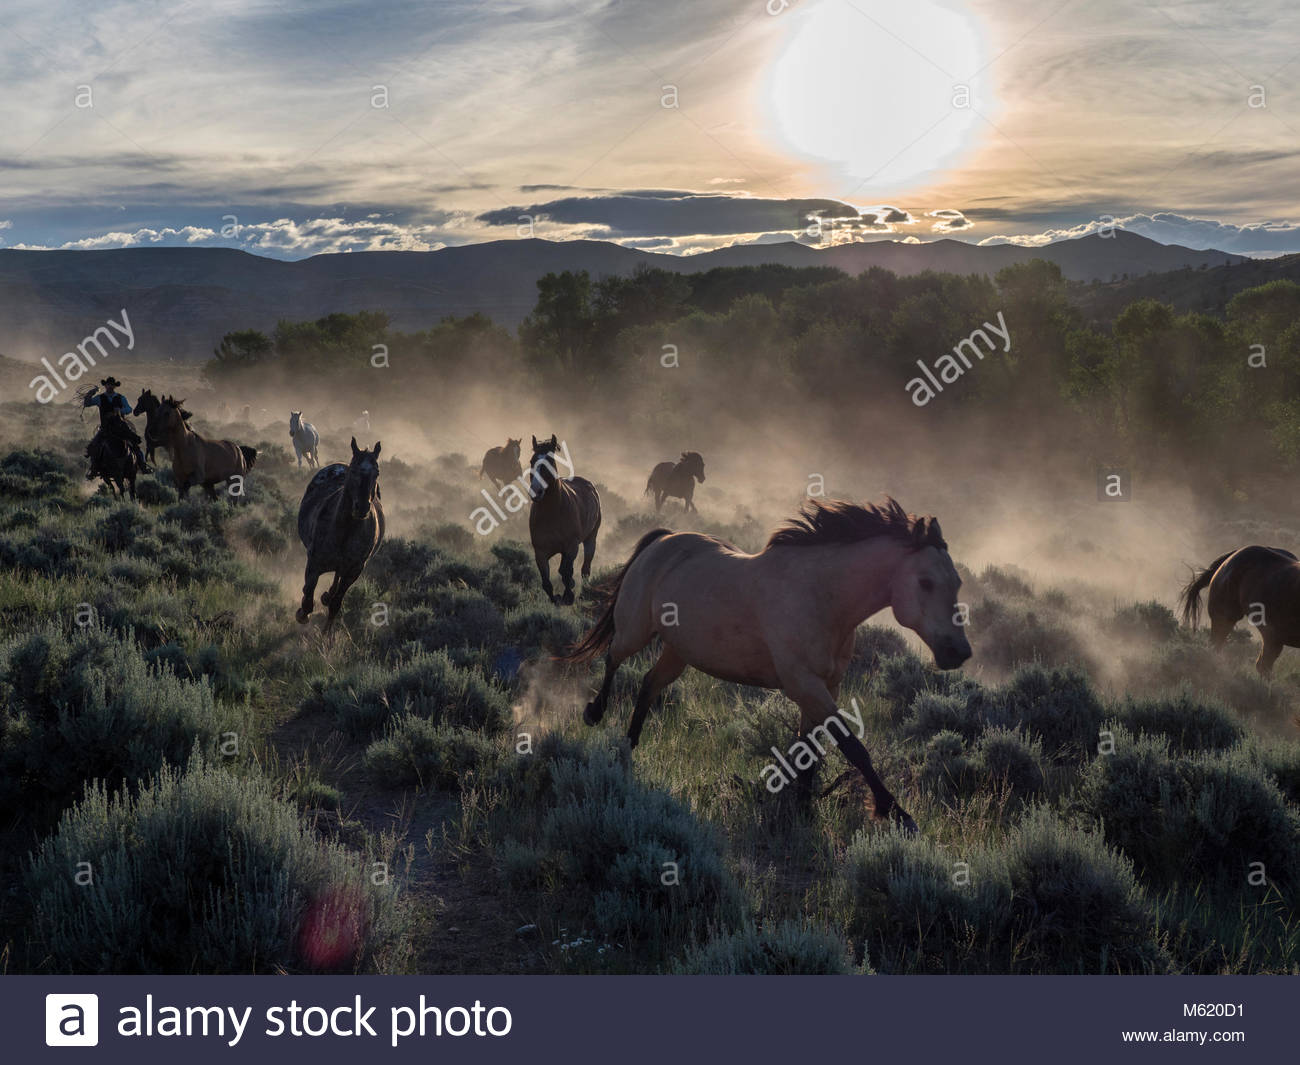 Horse herd being driven in early morning. - Stock Image